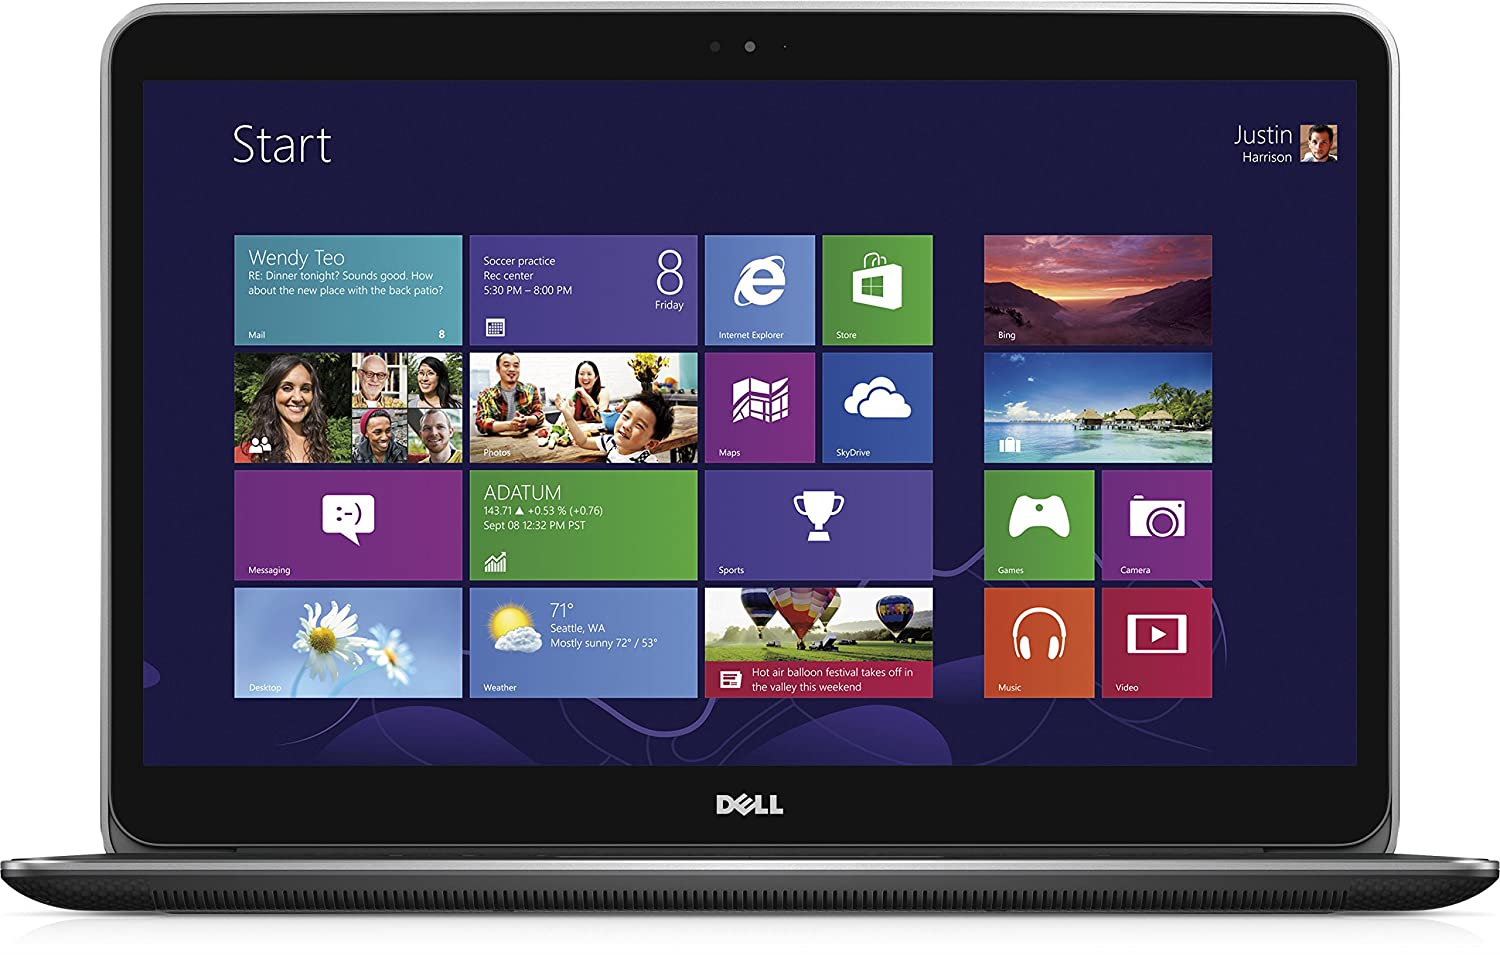 DELL XPS 9530 - Ordenador portátil (i7-4712HQ, Touchpad, Windows 8.1, Polímero de litio, 64 bits, Intel Core i7-4xxx): Amazon.es: Informática